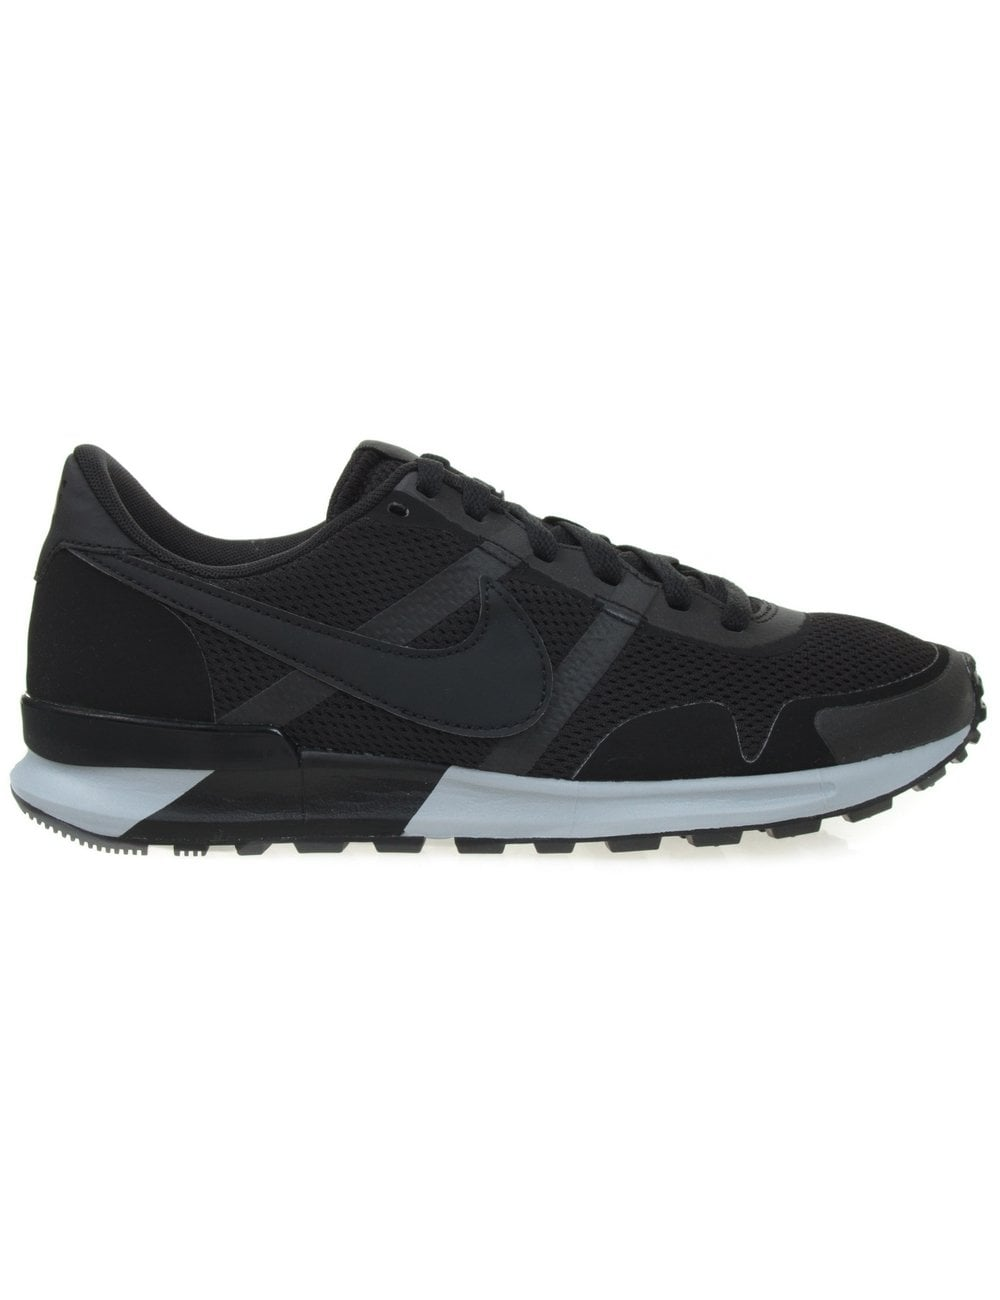 23f58574a600 Nike Air Pegasus 83 30 - All Black - Footwear from Fat Buddha Store UK